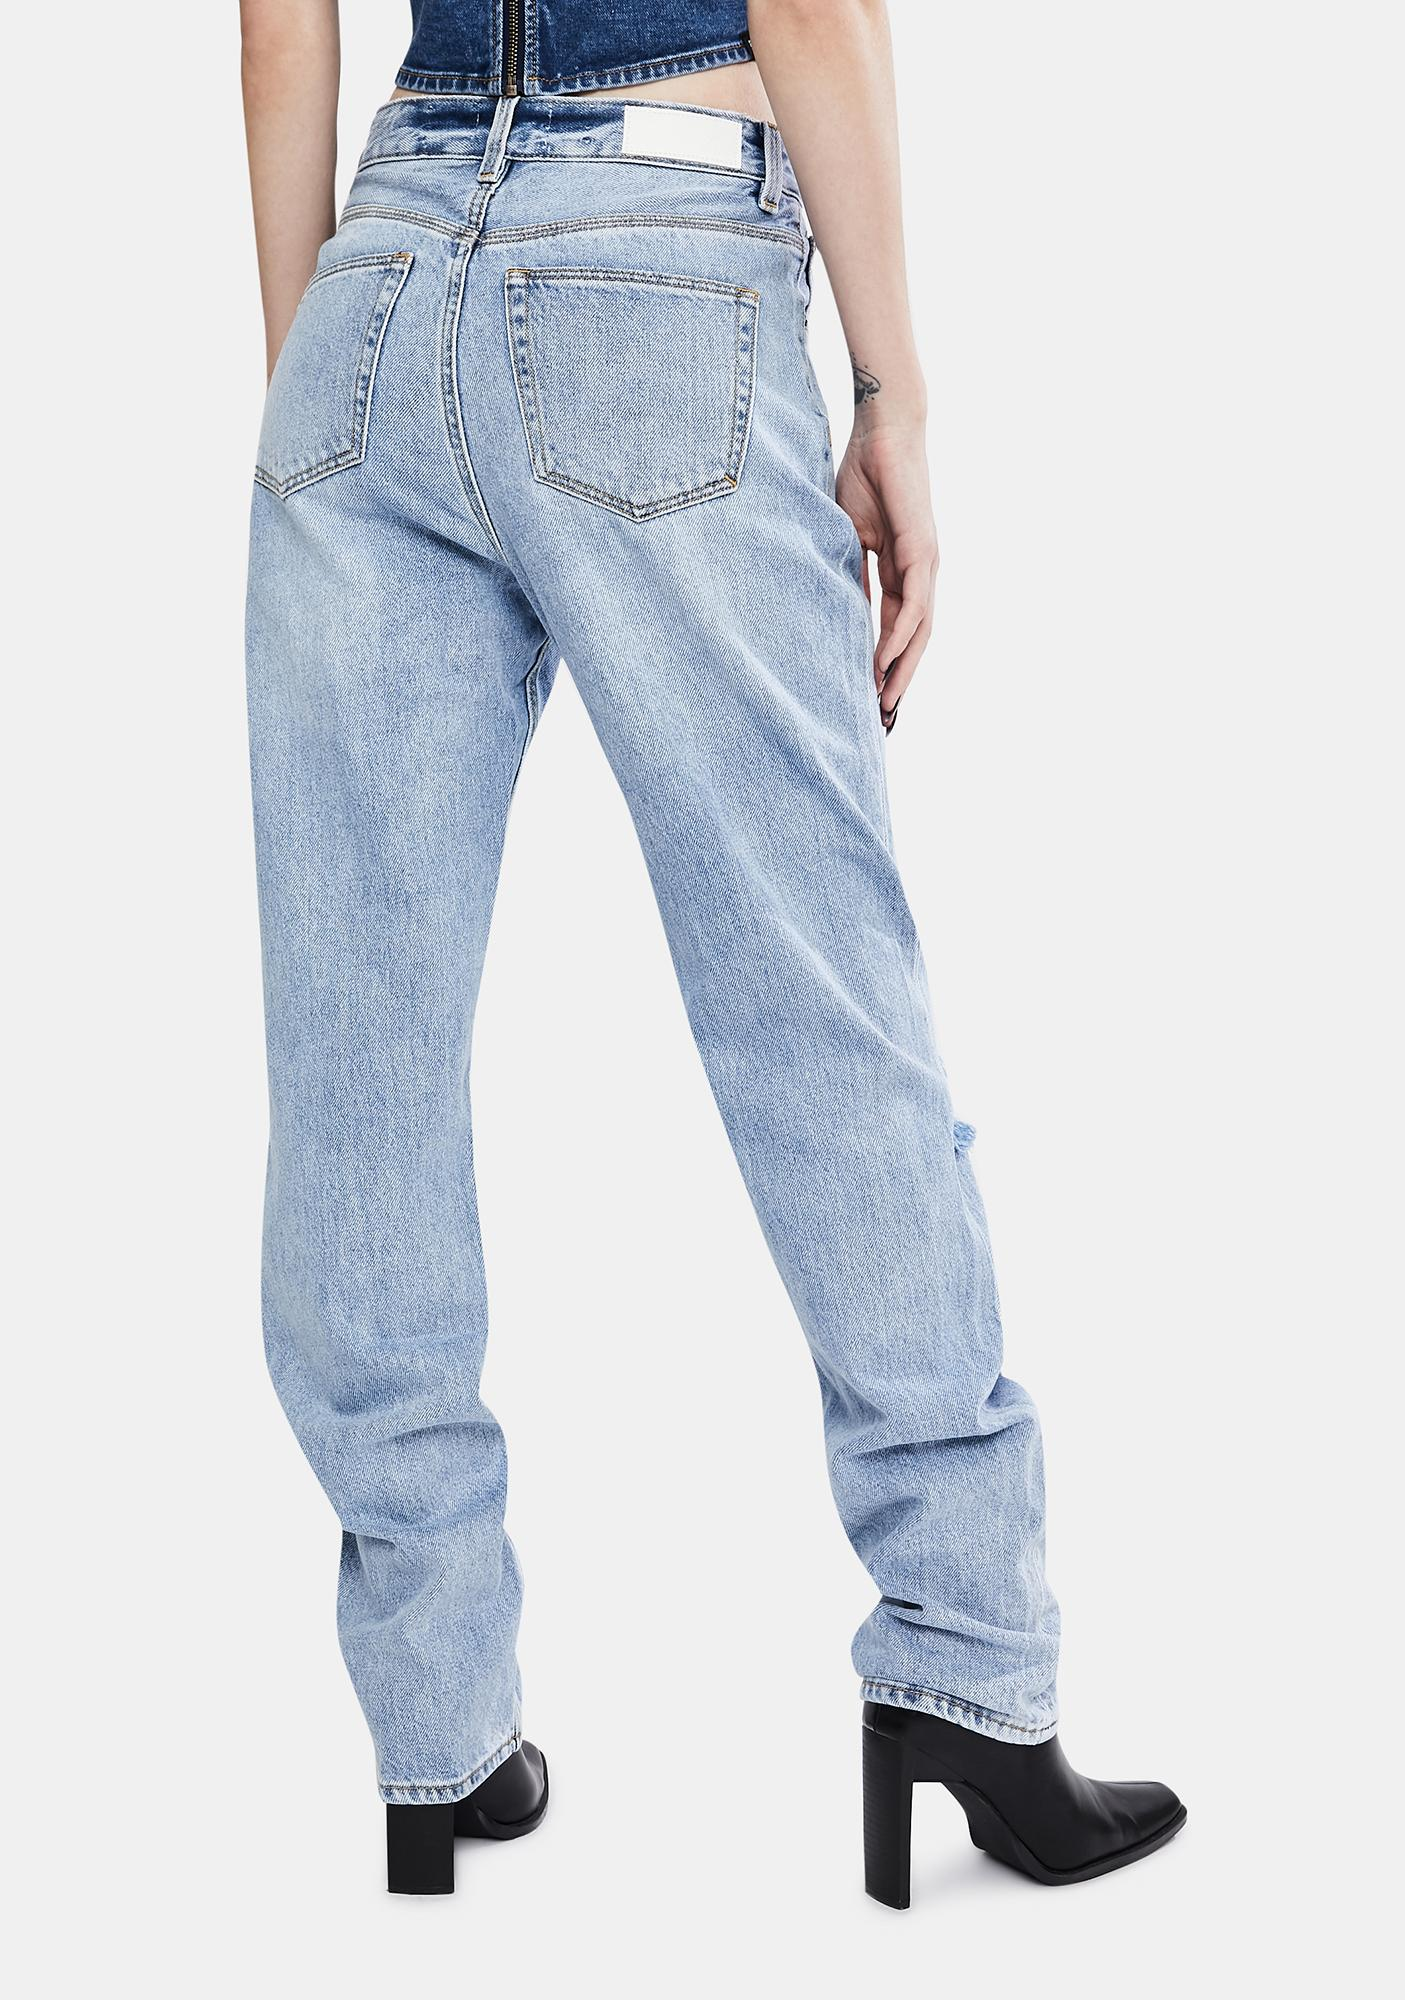 Zee Gee Why Indigo Raider Straight Up Relaxed Jeans